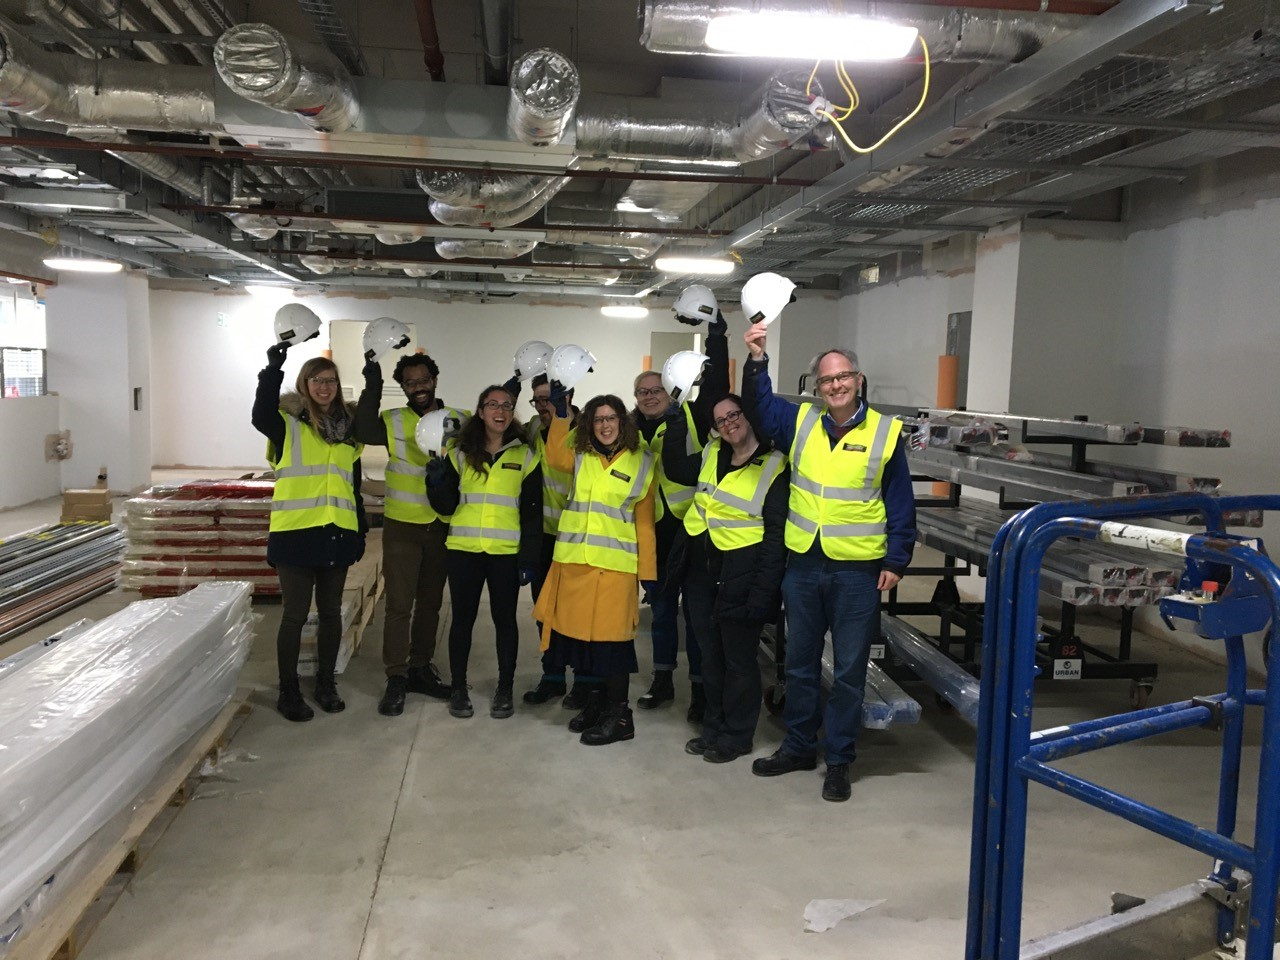 8 OPDC researchers including Director Richard Wade-Martins, Dayne Beccano-Kelly and Natalie Connor Robson hold hard hats